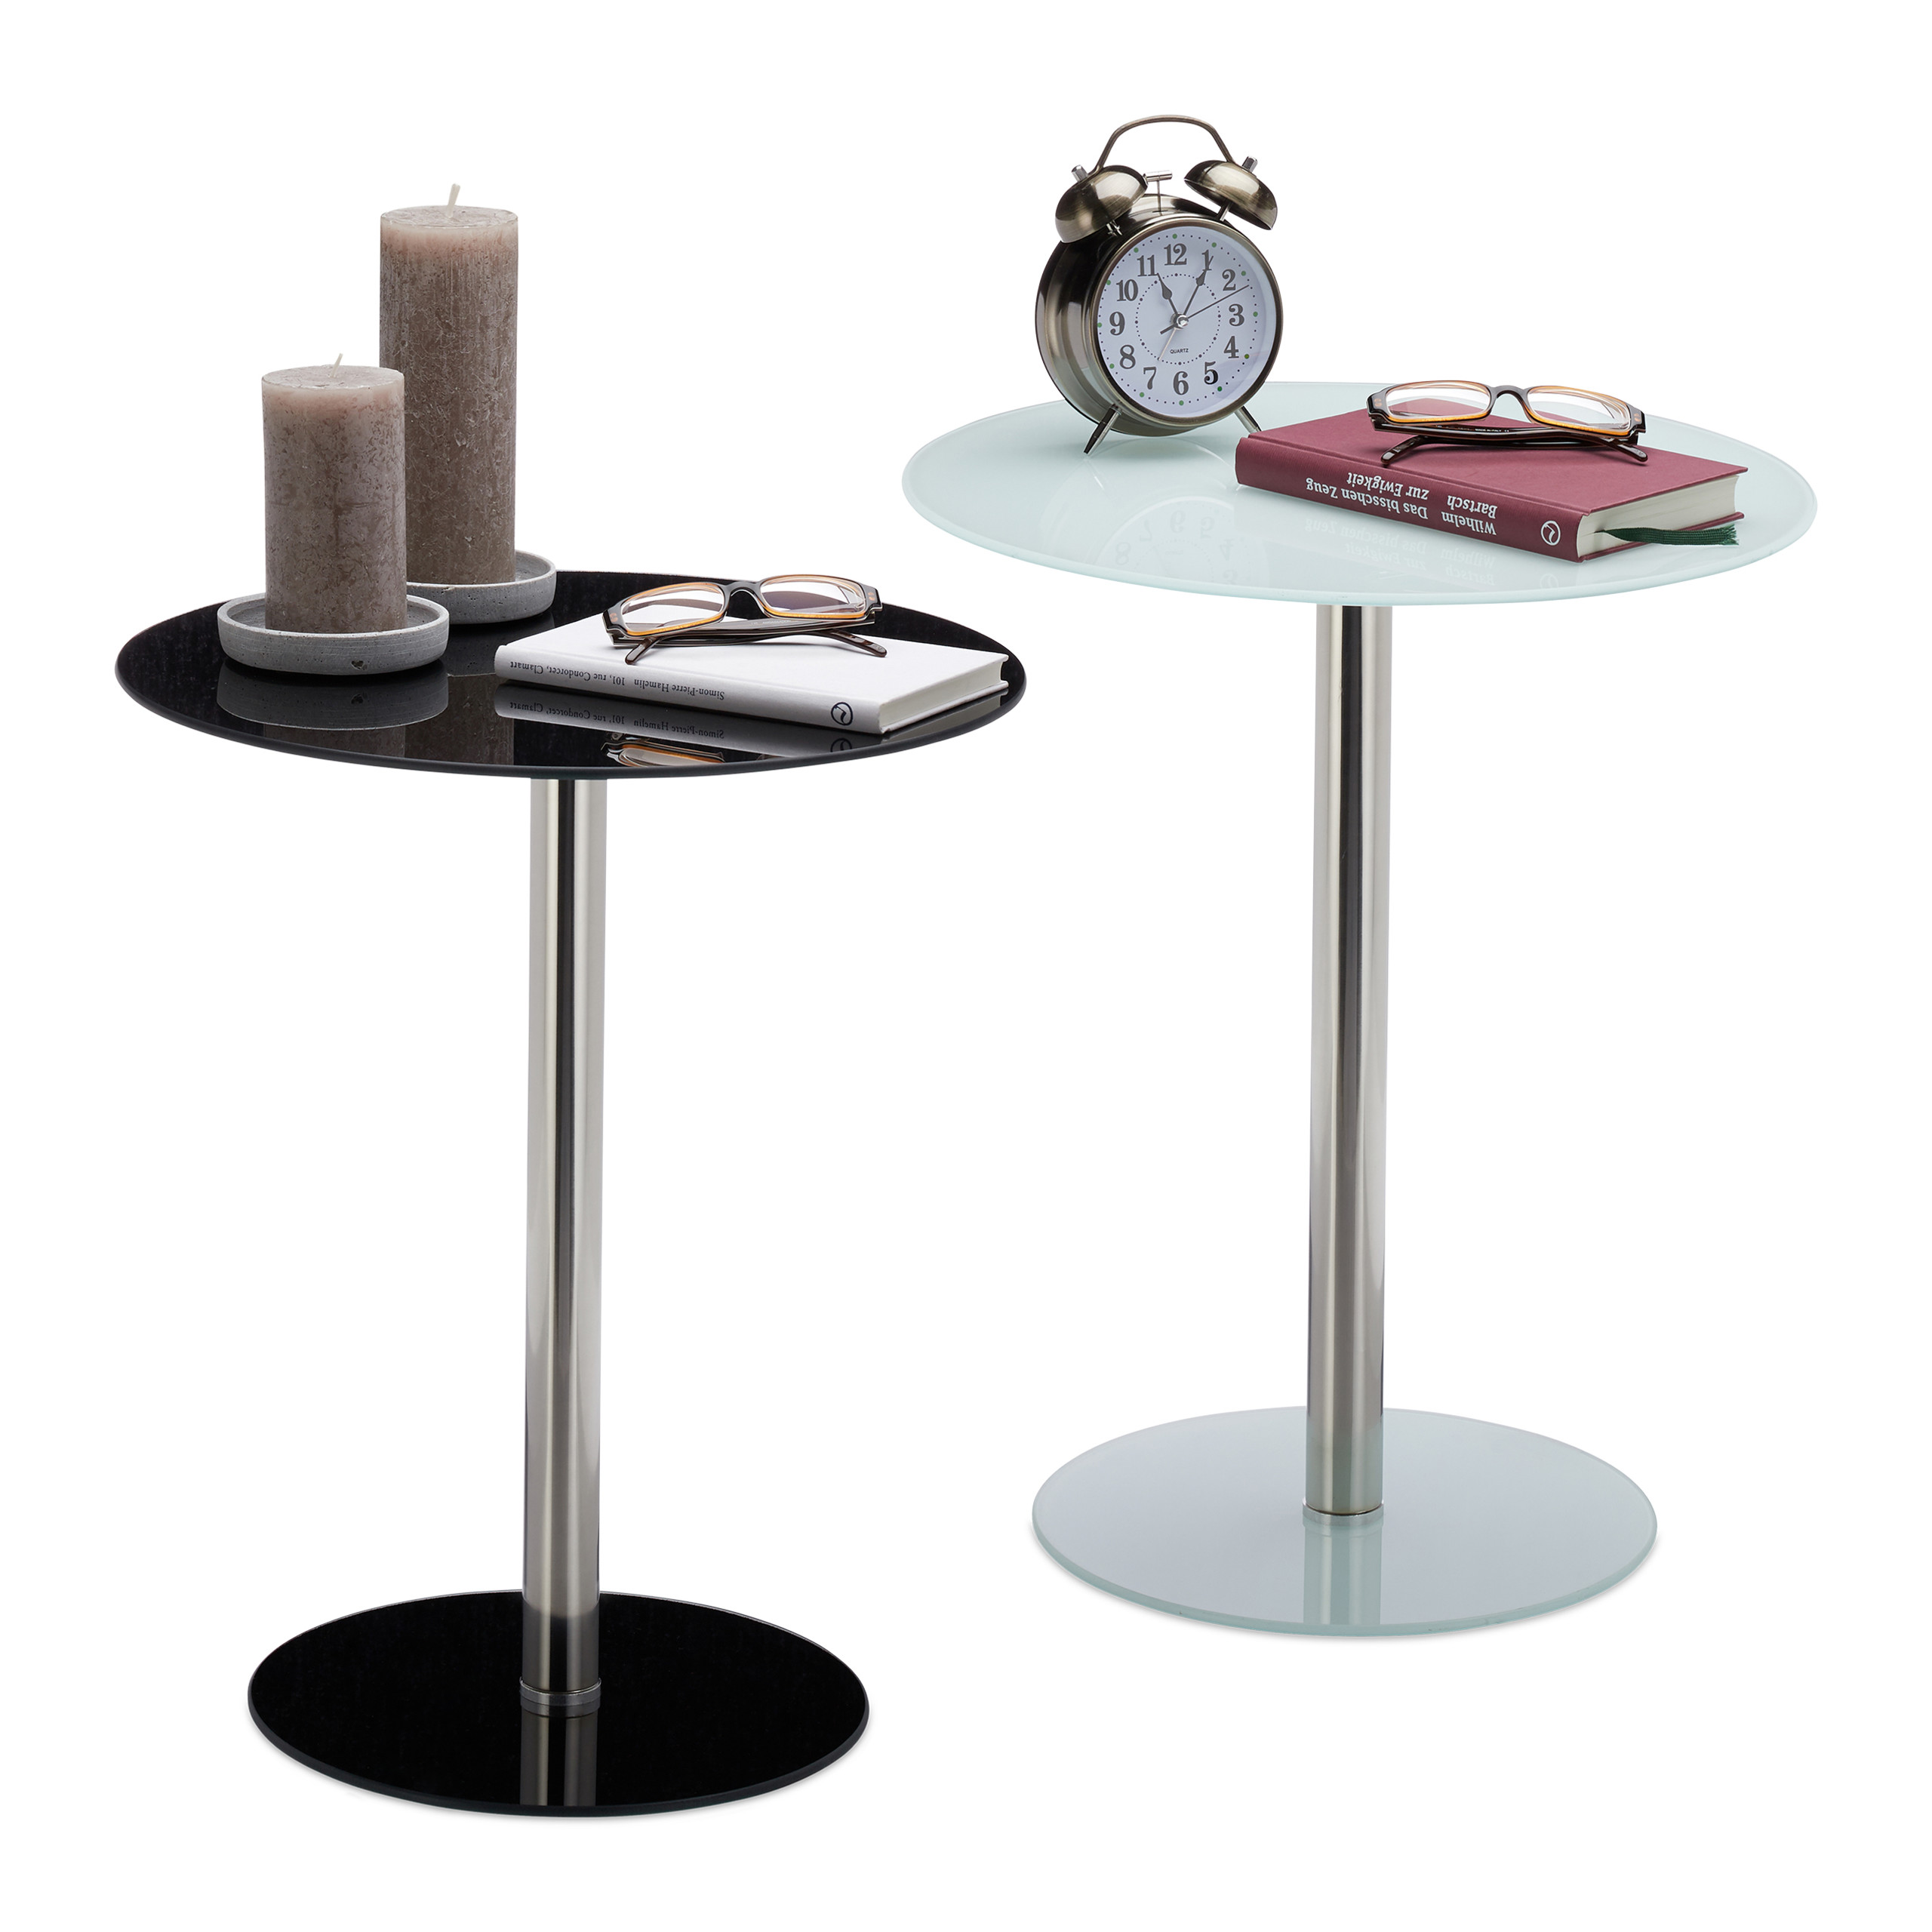 Table Appoint Verre Détails Sur Table D Appoint Verre Inox Ronde Table Design De Salon Pause Café Décoration